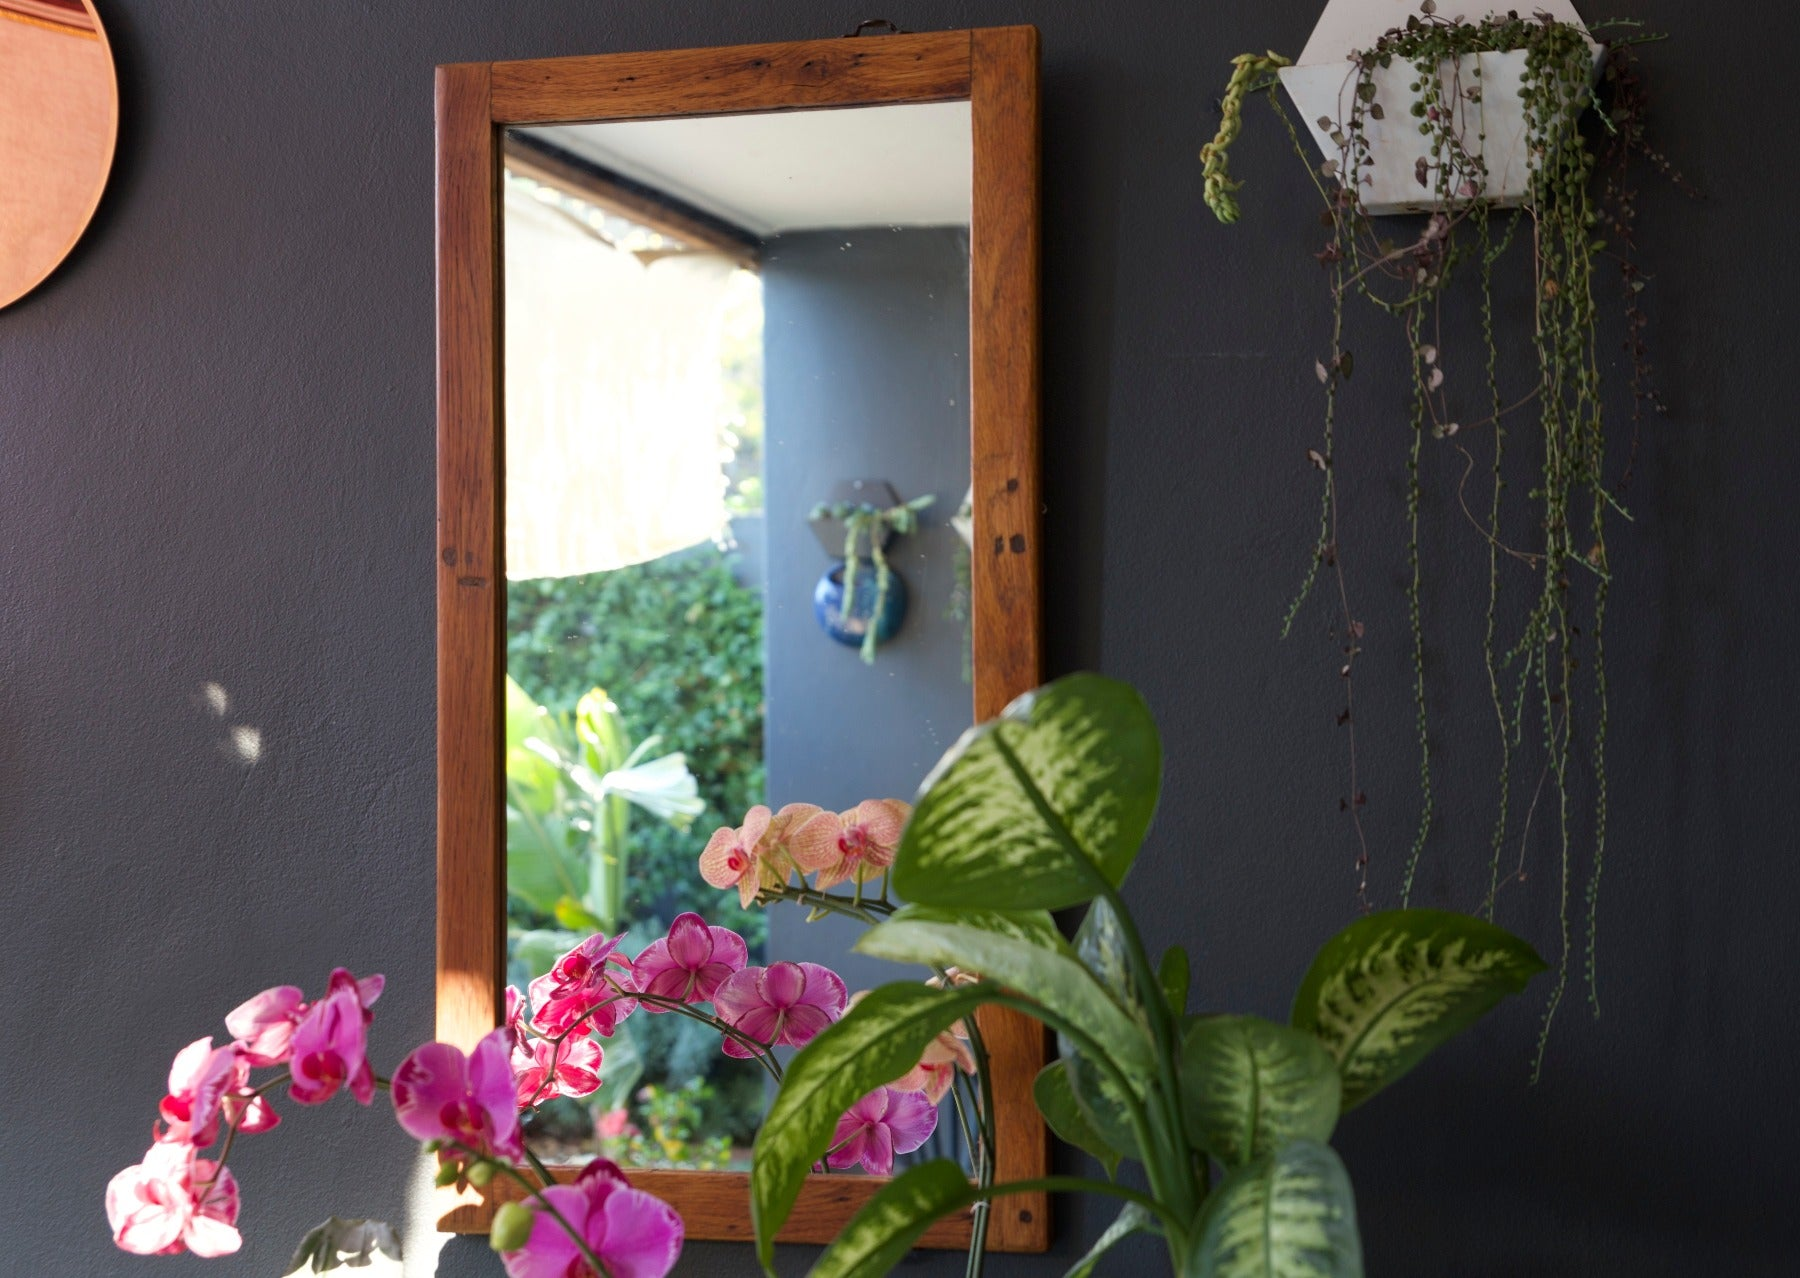 Vintage Wooden Window Frame Mirror Upcycled